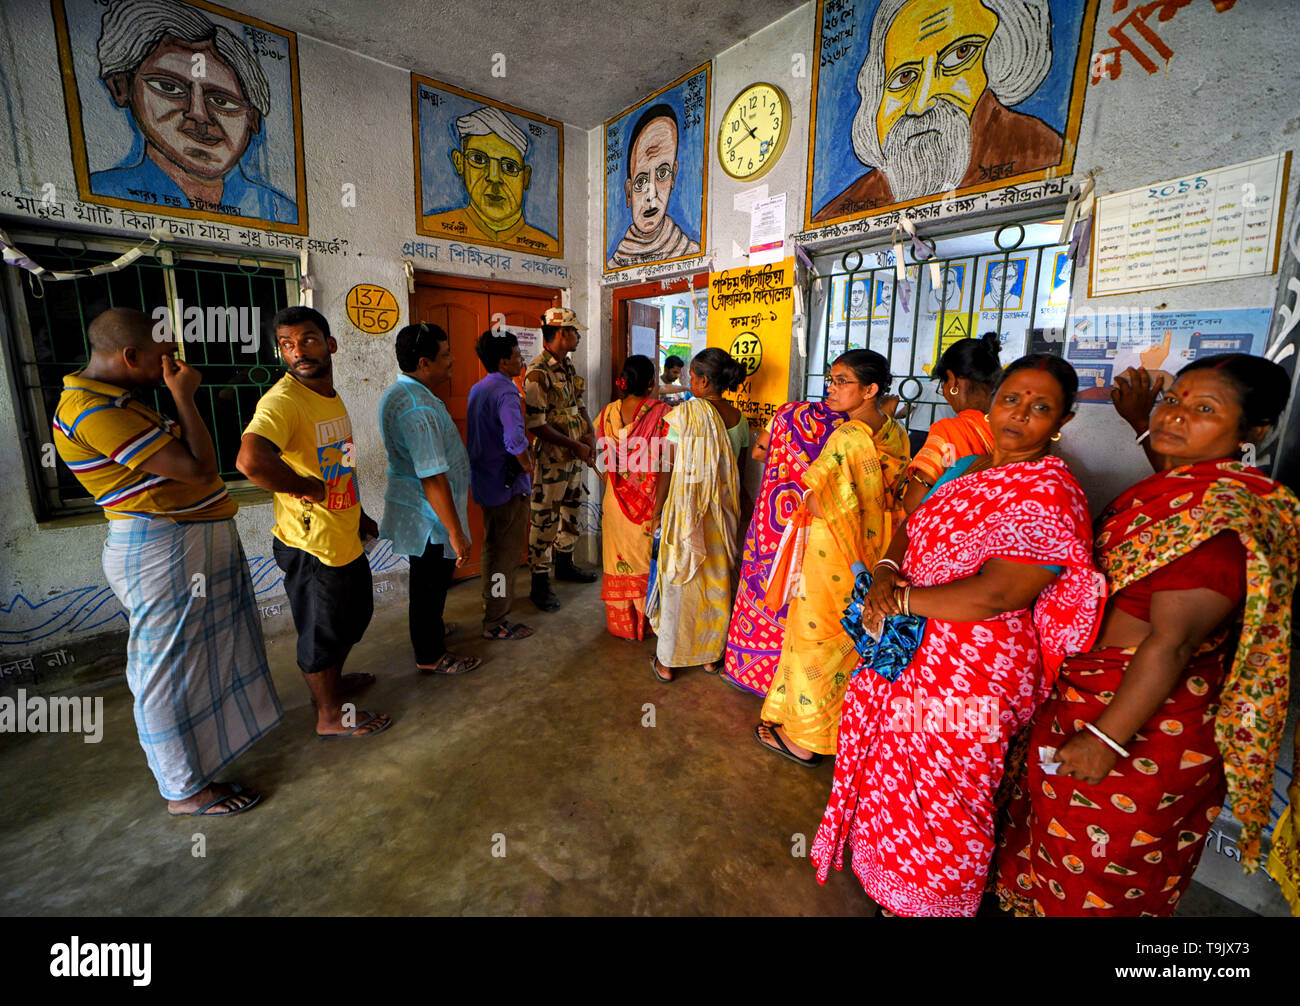 Voters seen in a queue at a polling station to cast their Votes during the 7th Phase (Final Phase) of General Elections in Baruipur, west Bengal. Voting has begun for the 7th phase (final phase) elections in Baruipur, West Bengal. - Stock Image